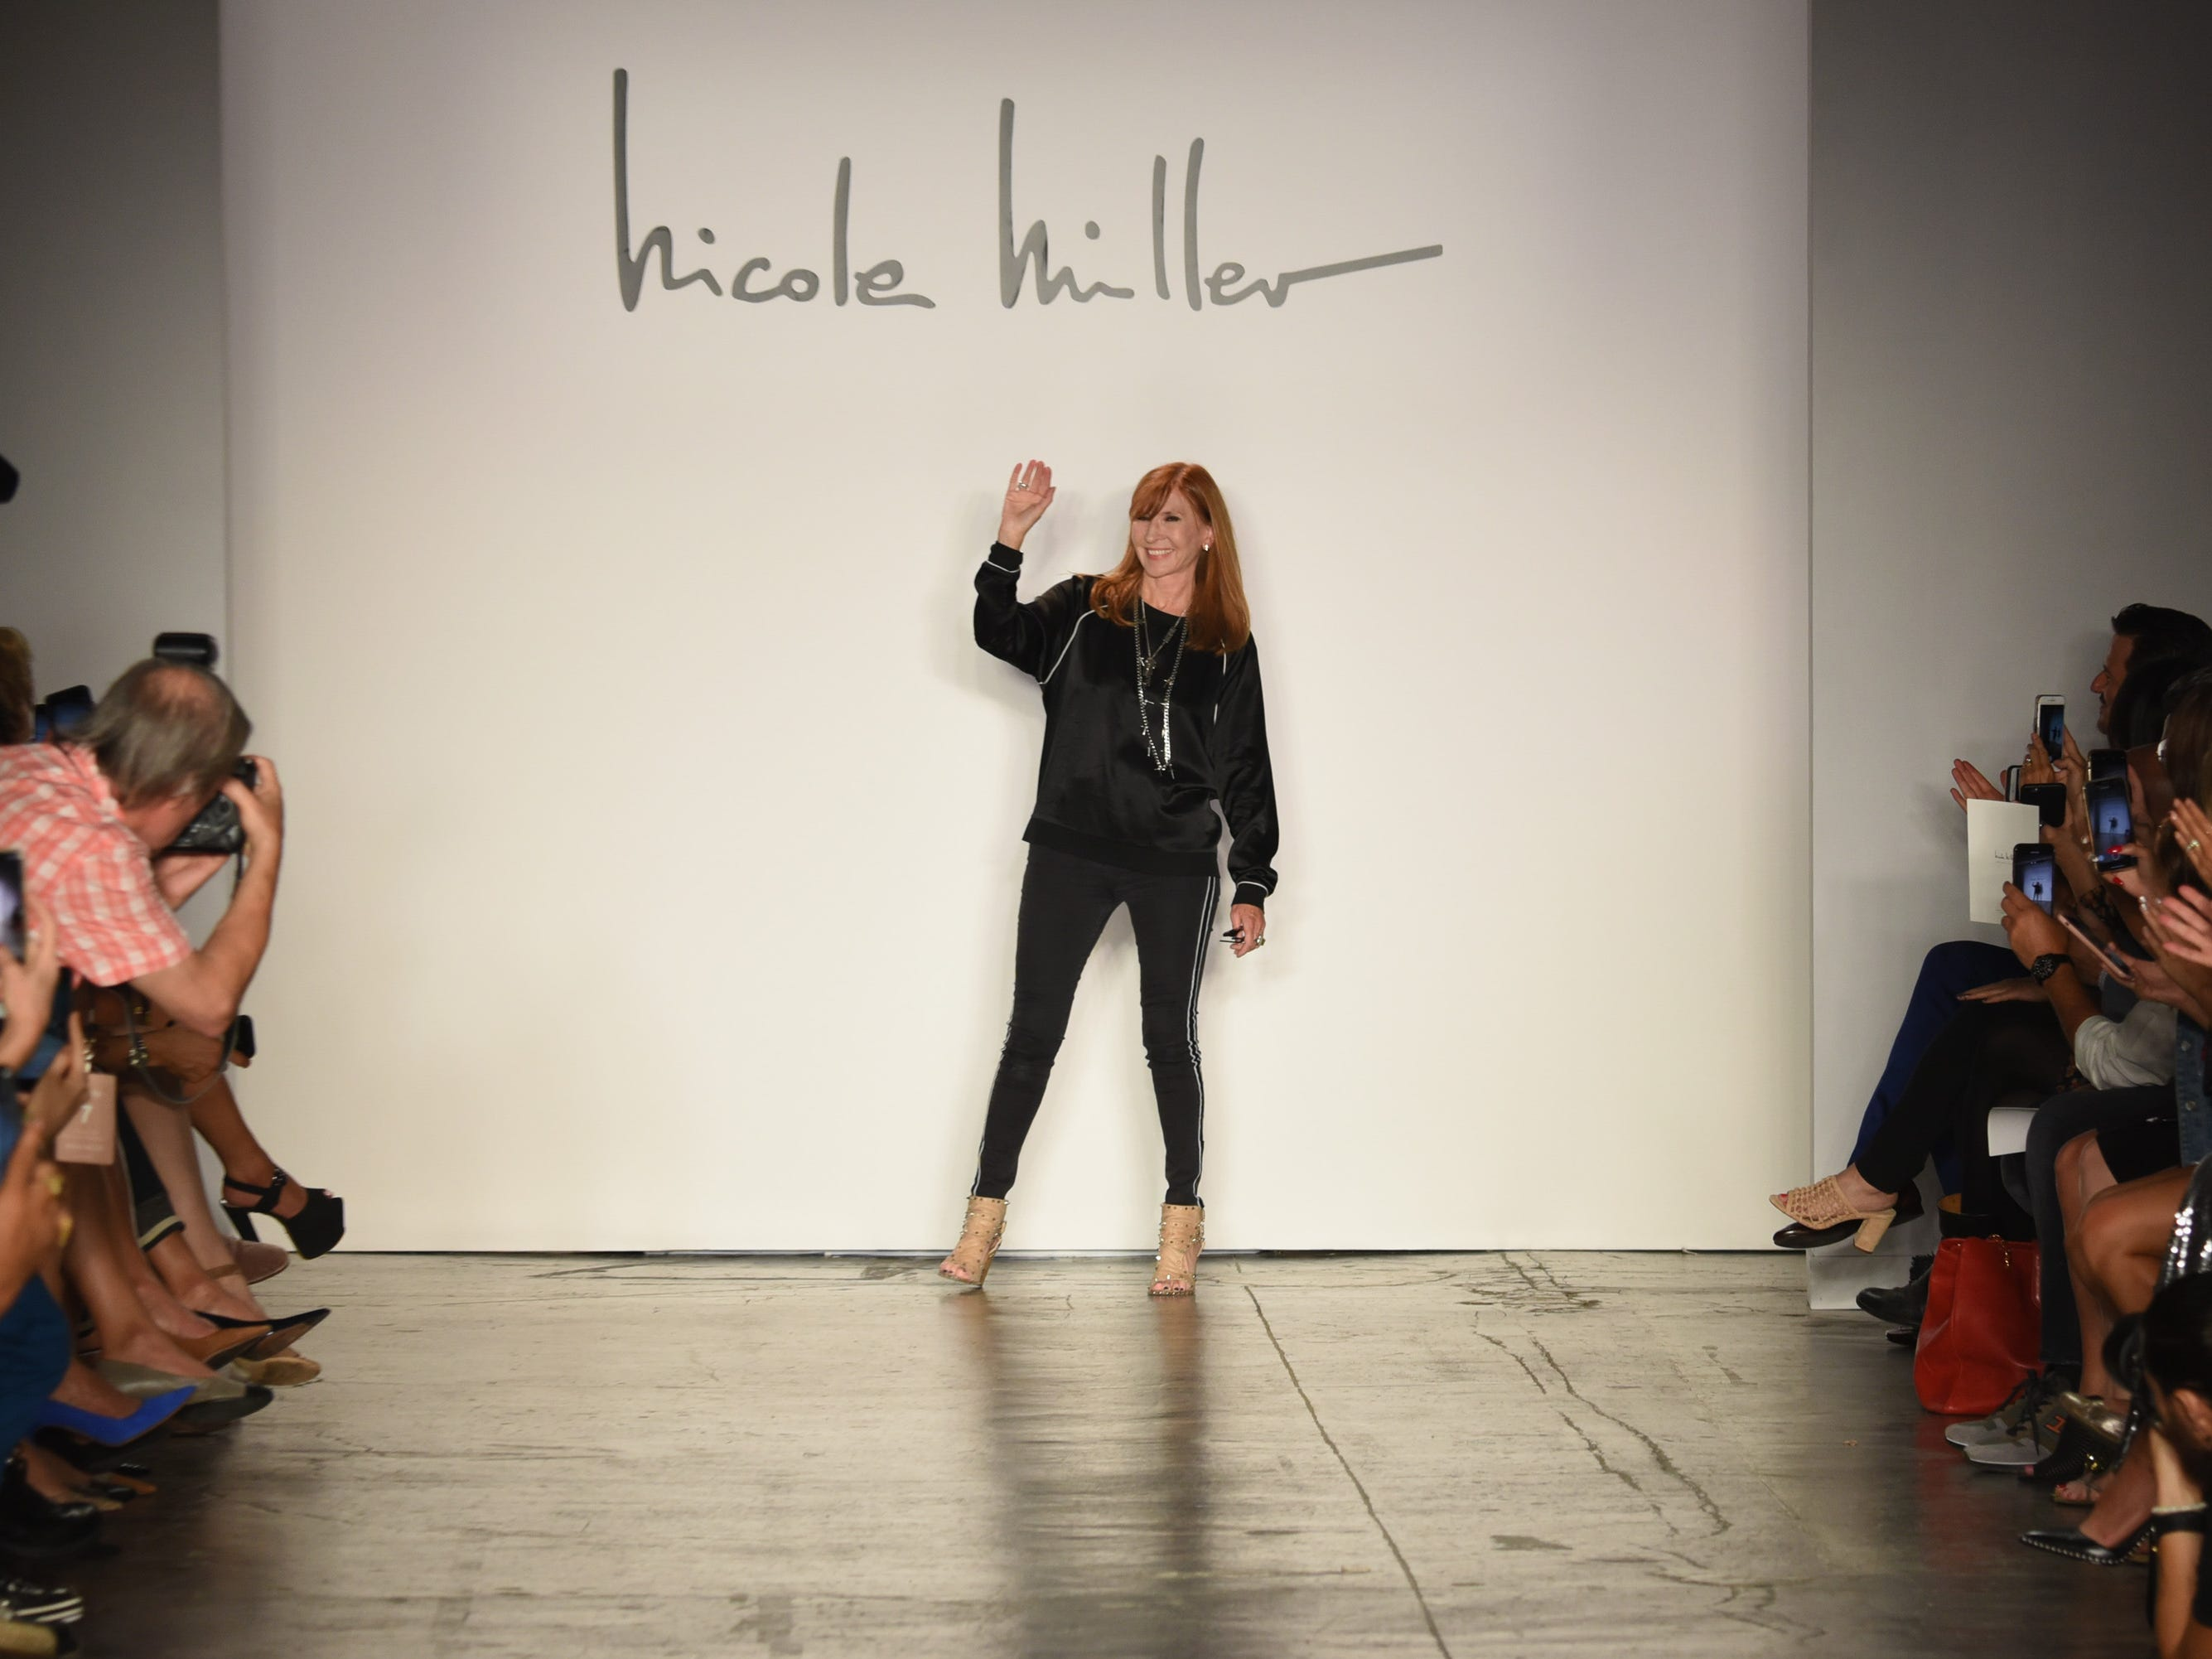 NEW YORK, NY - SEPTEMBER 06:  Designer Nicole Miller walks the runway during the Mary Kay at Nicole Miller Spring/Summer 2019 fashion show at Industria Studios on September 6, 2018 in New York City.  (Photo by Albert Urso/Getty Images for Mary Kay) ORG XMIT: 775215634 ORIG FILE ID: 1027975984